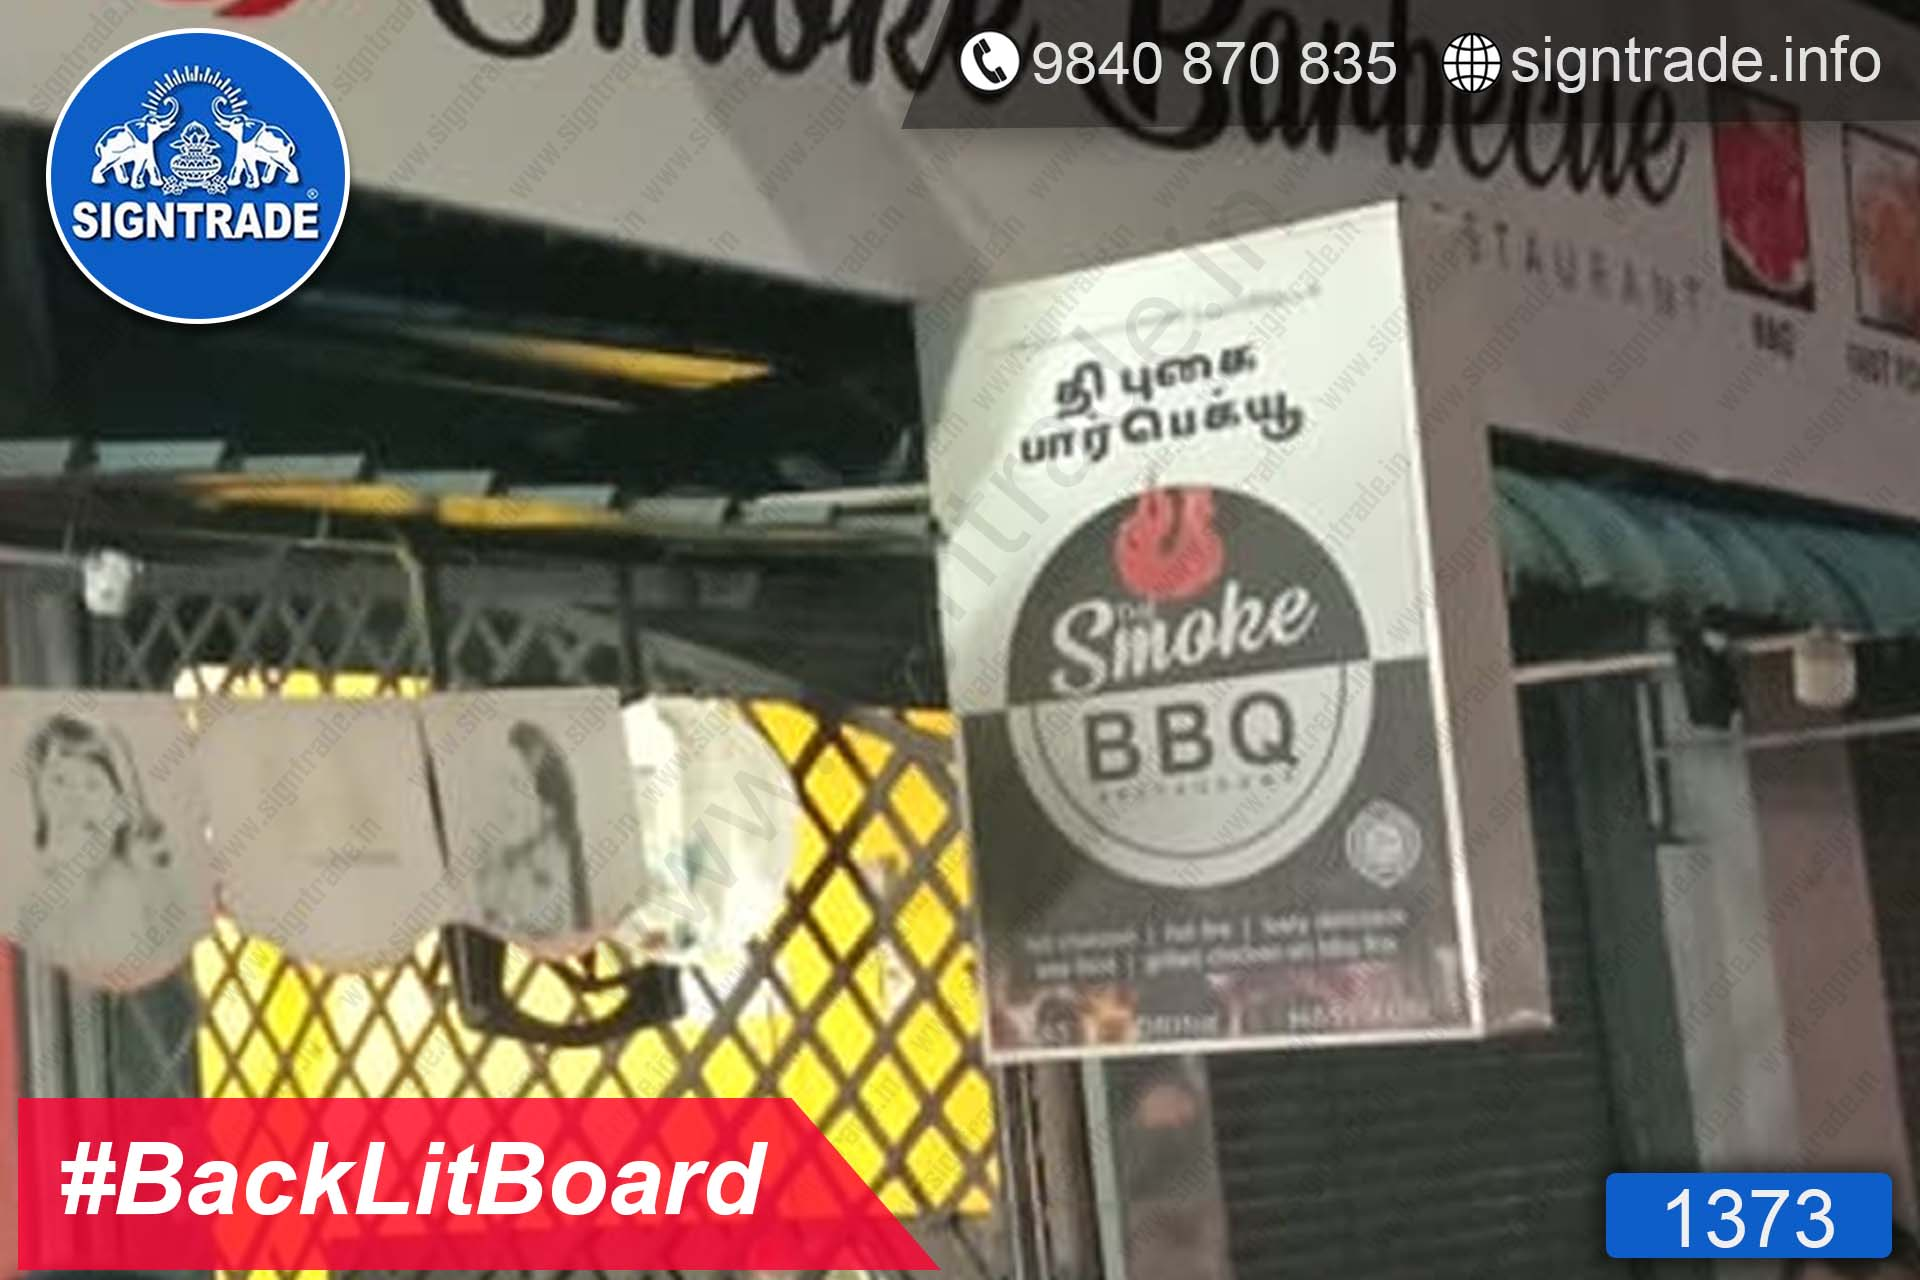 The Smoke Barbeque - Chennai - SIGNTRADE - Backlit Flex Board - Digital Printing Services in Chennai